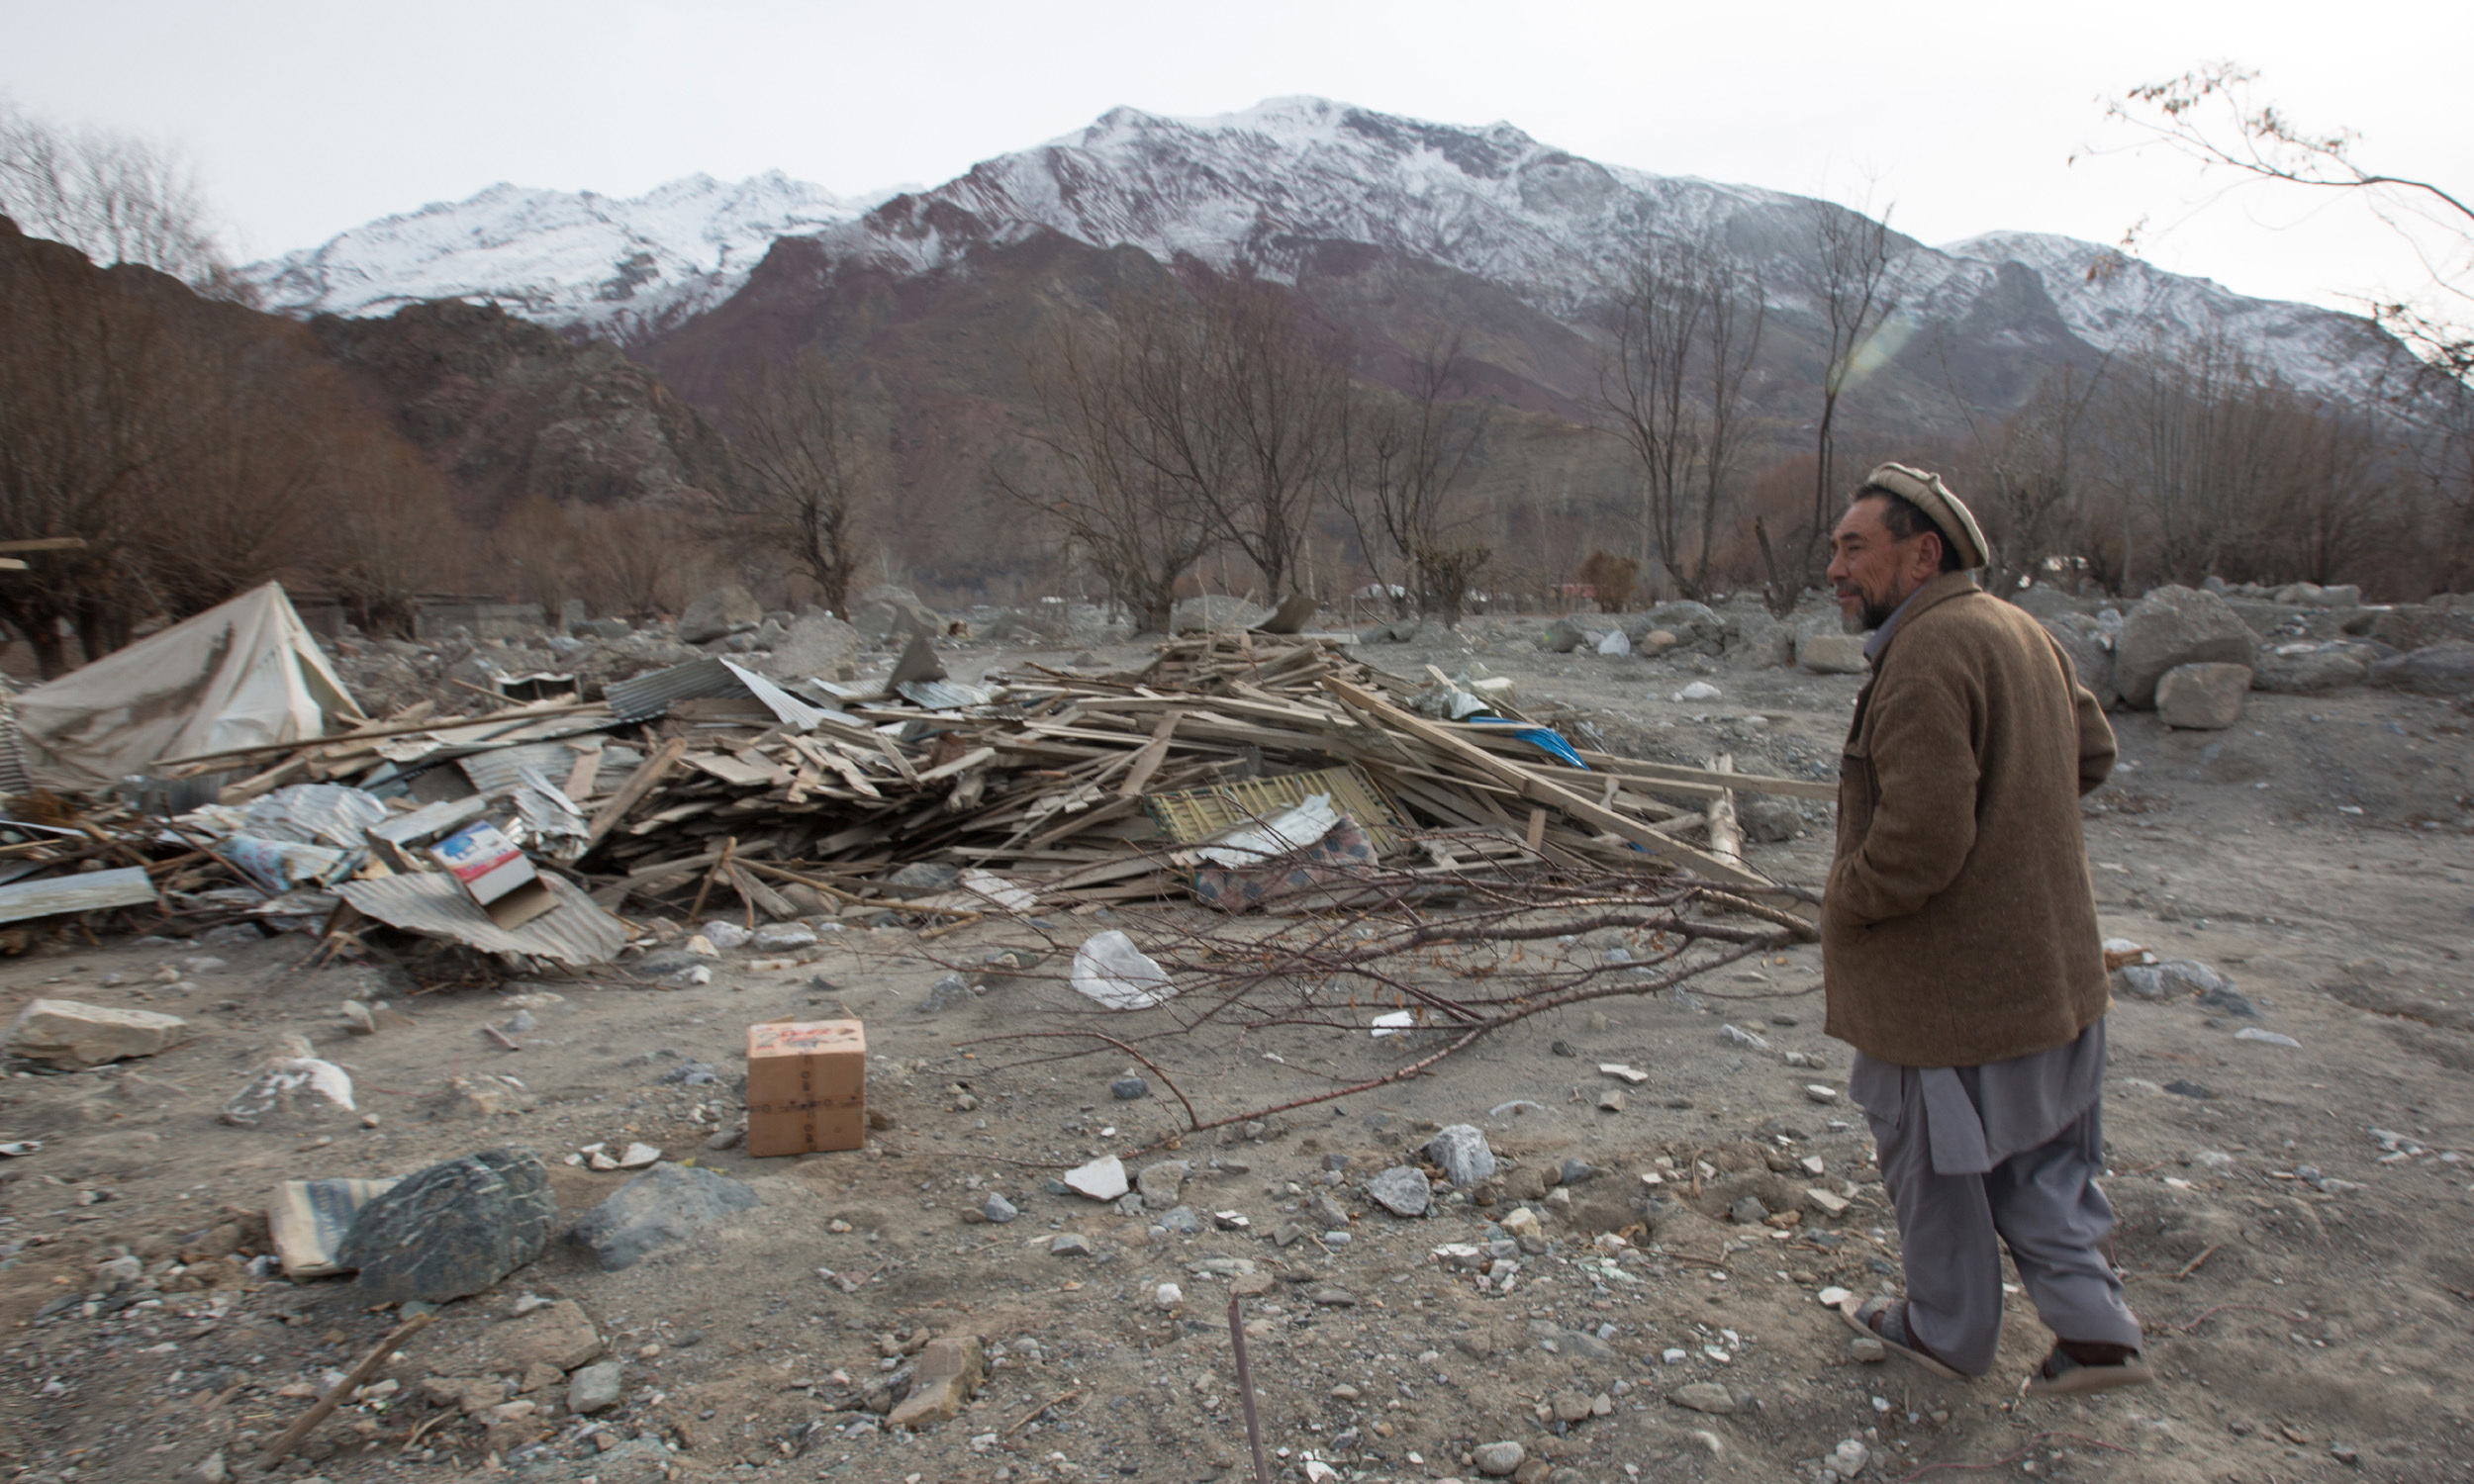 Mohiuddin who lost his home in a flood in Reshun Gol village